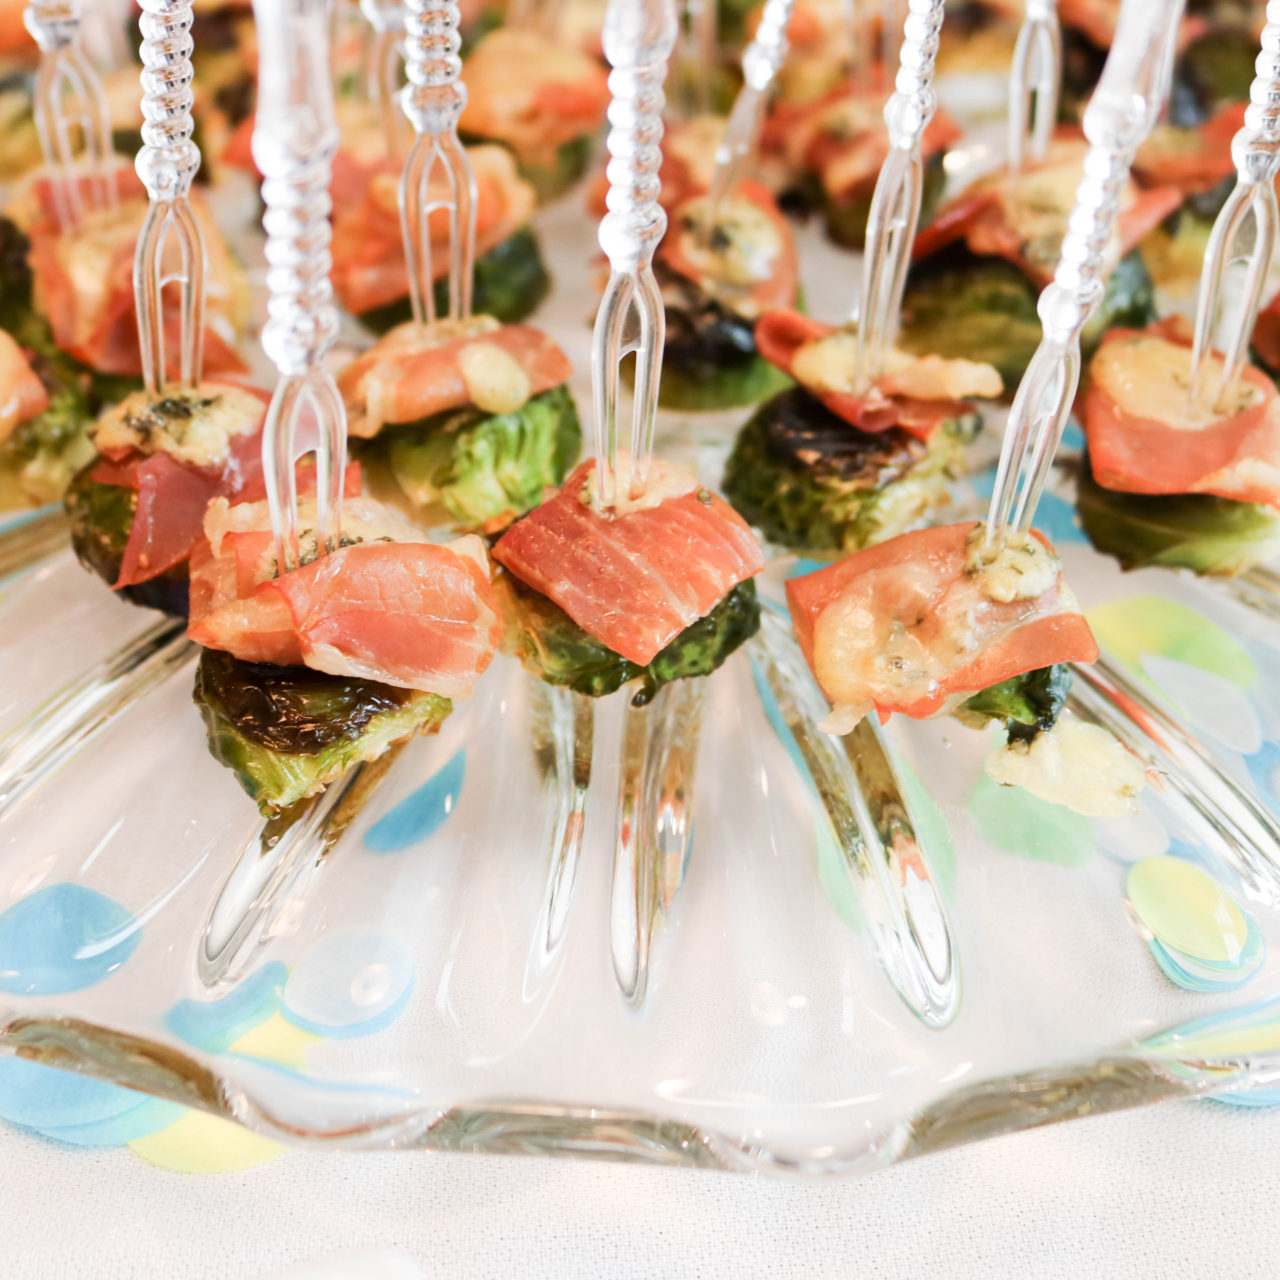 Brussels Sprouts, Prosciutto, and Blue Cheese